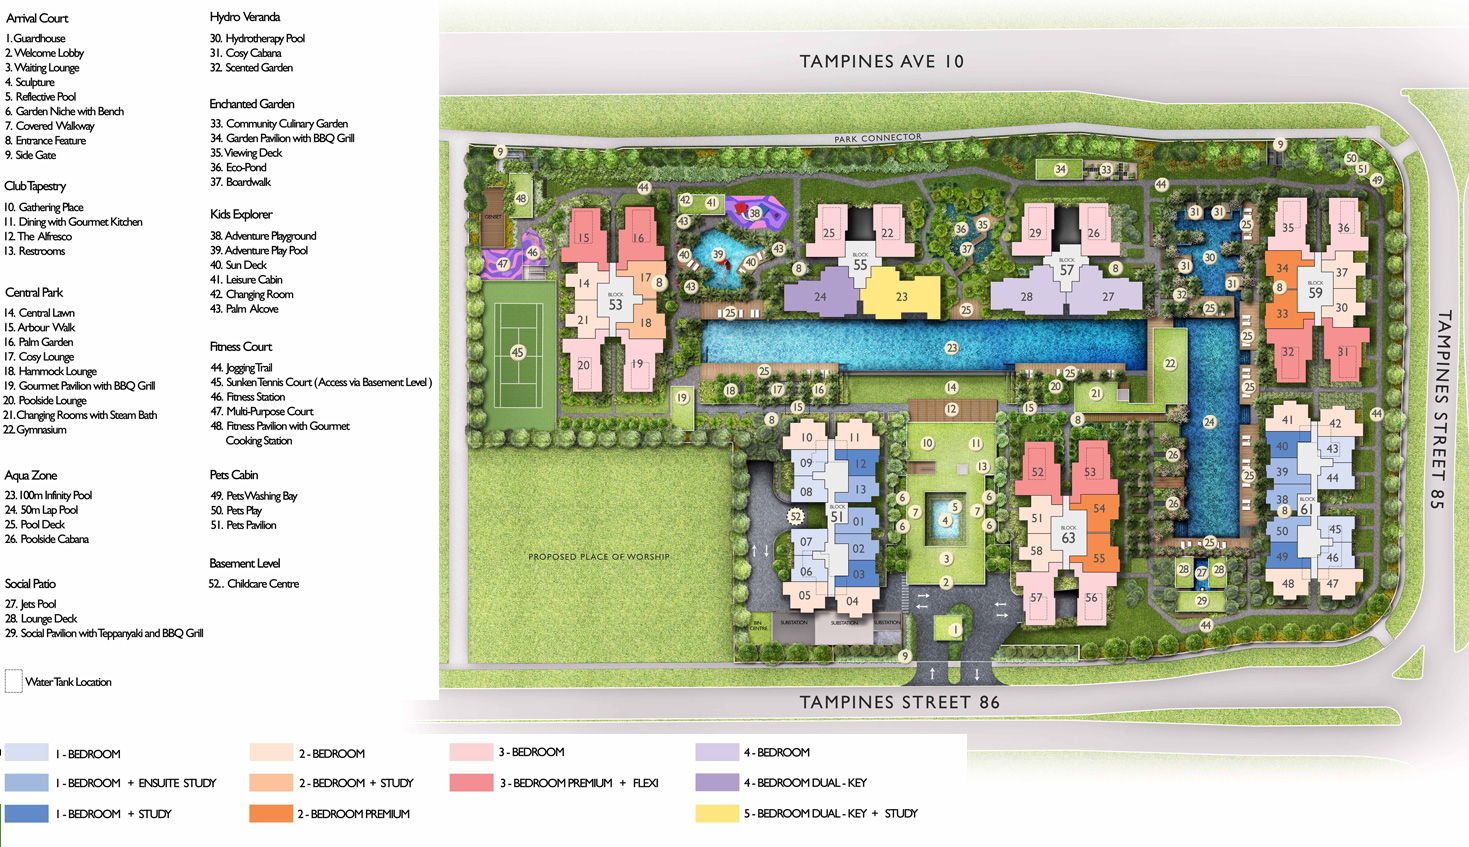 The Tapestry Siteplan